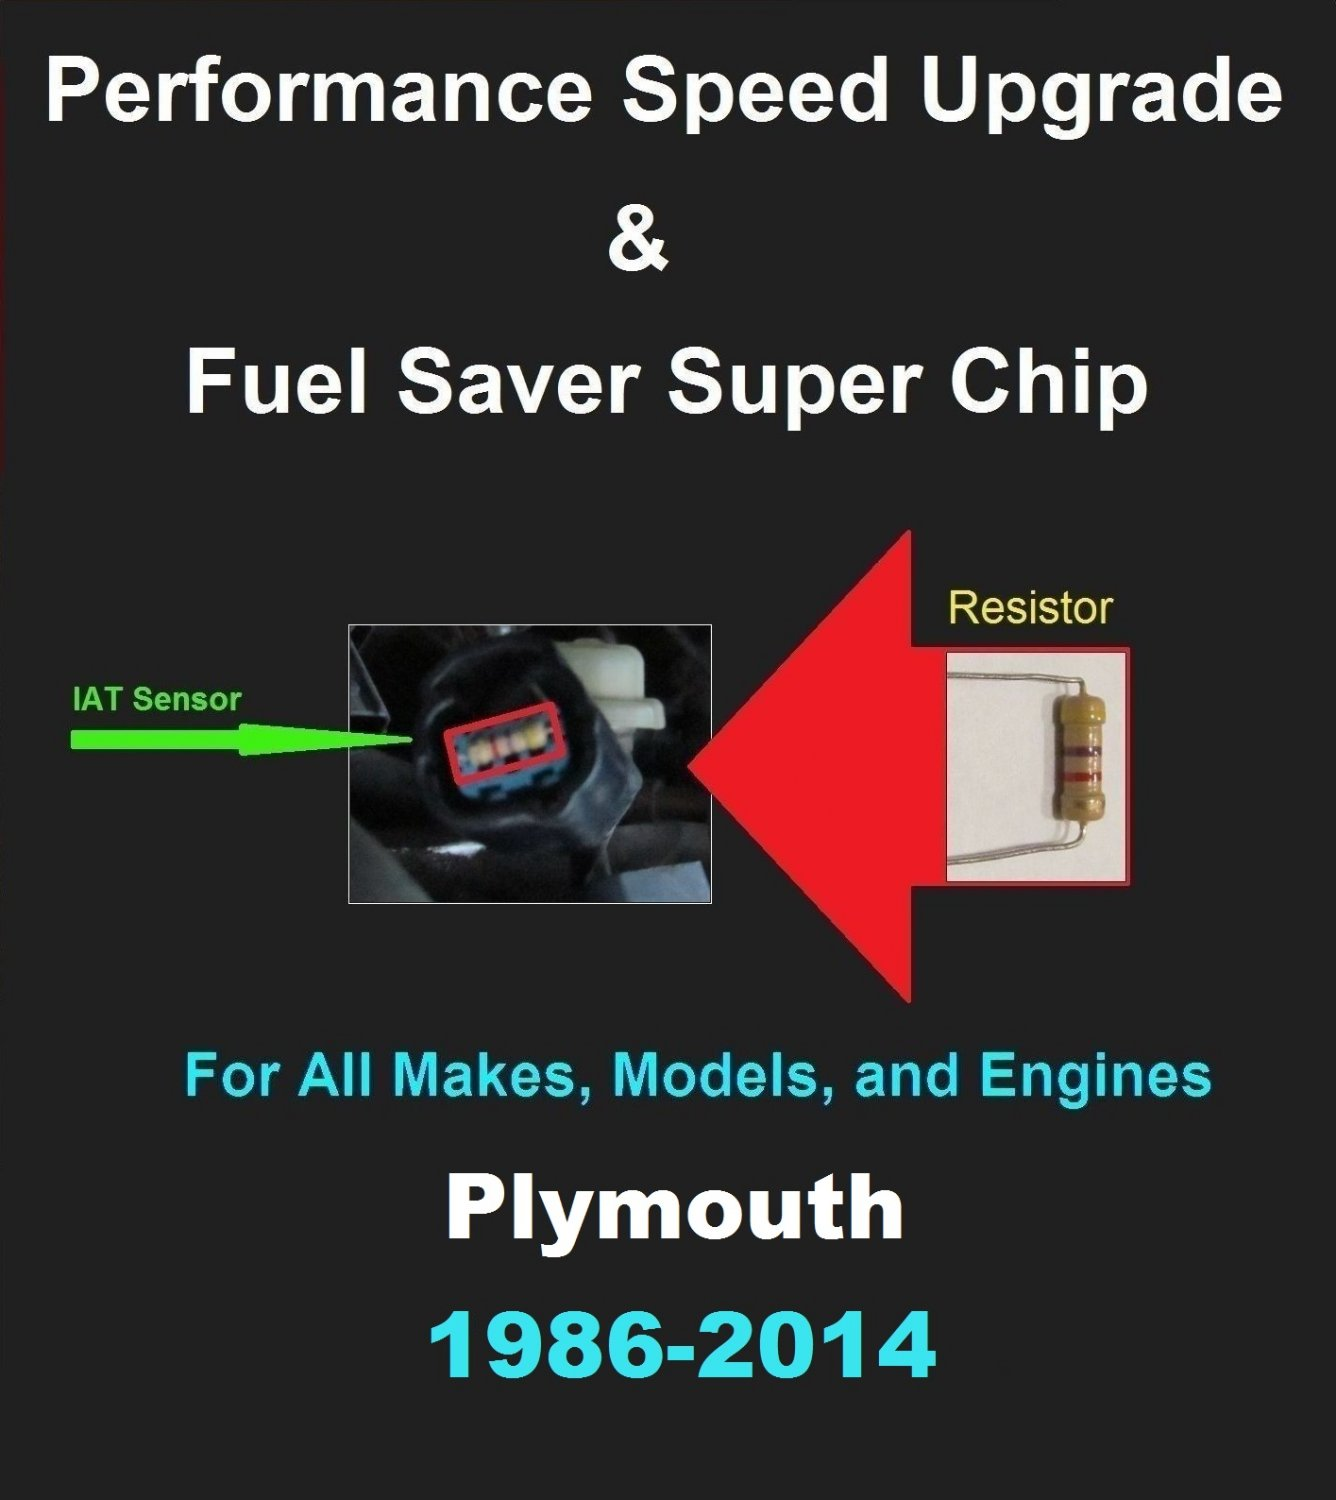 Plymouth Performance IAT Sensor Resistor Chip Mod Increase MPG HP Speed Power Super Fuel Gas Saver